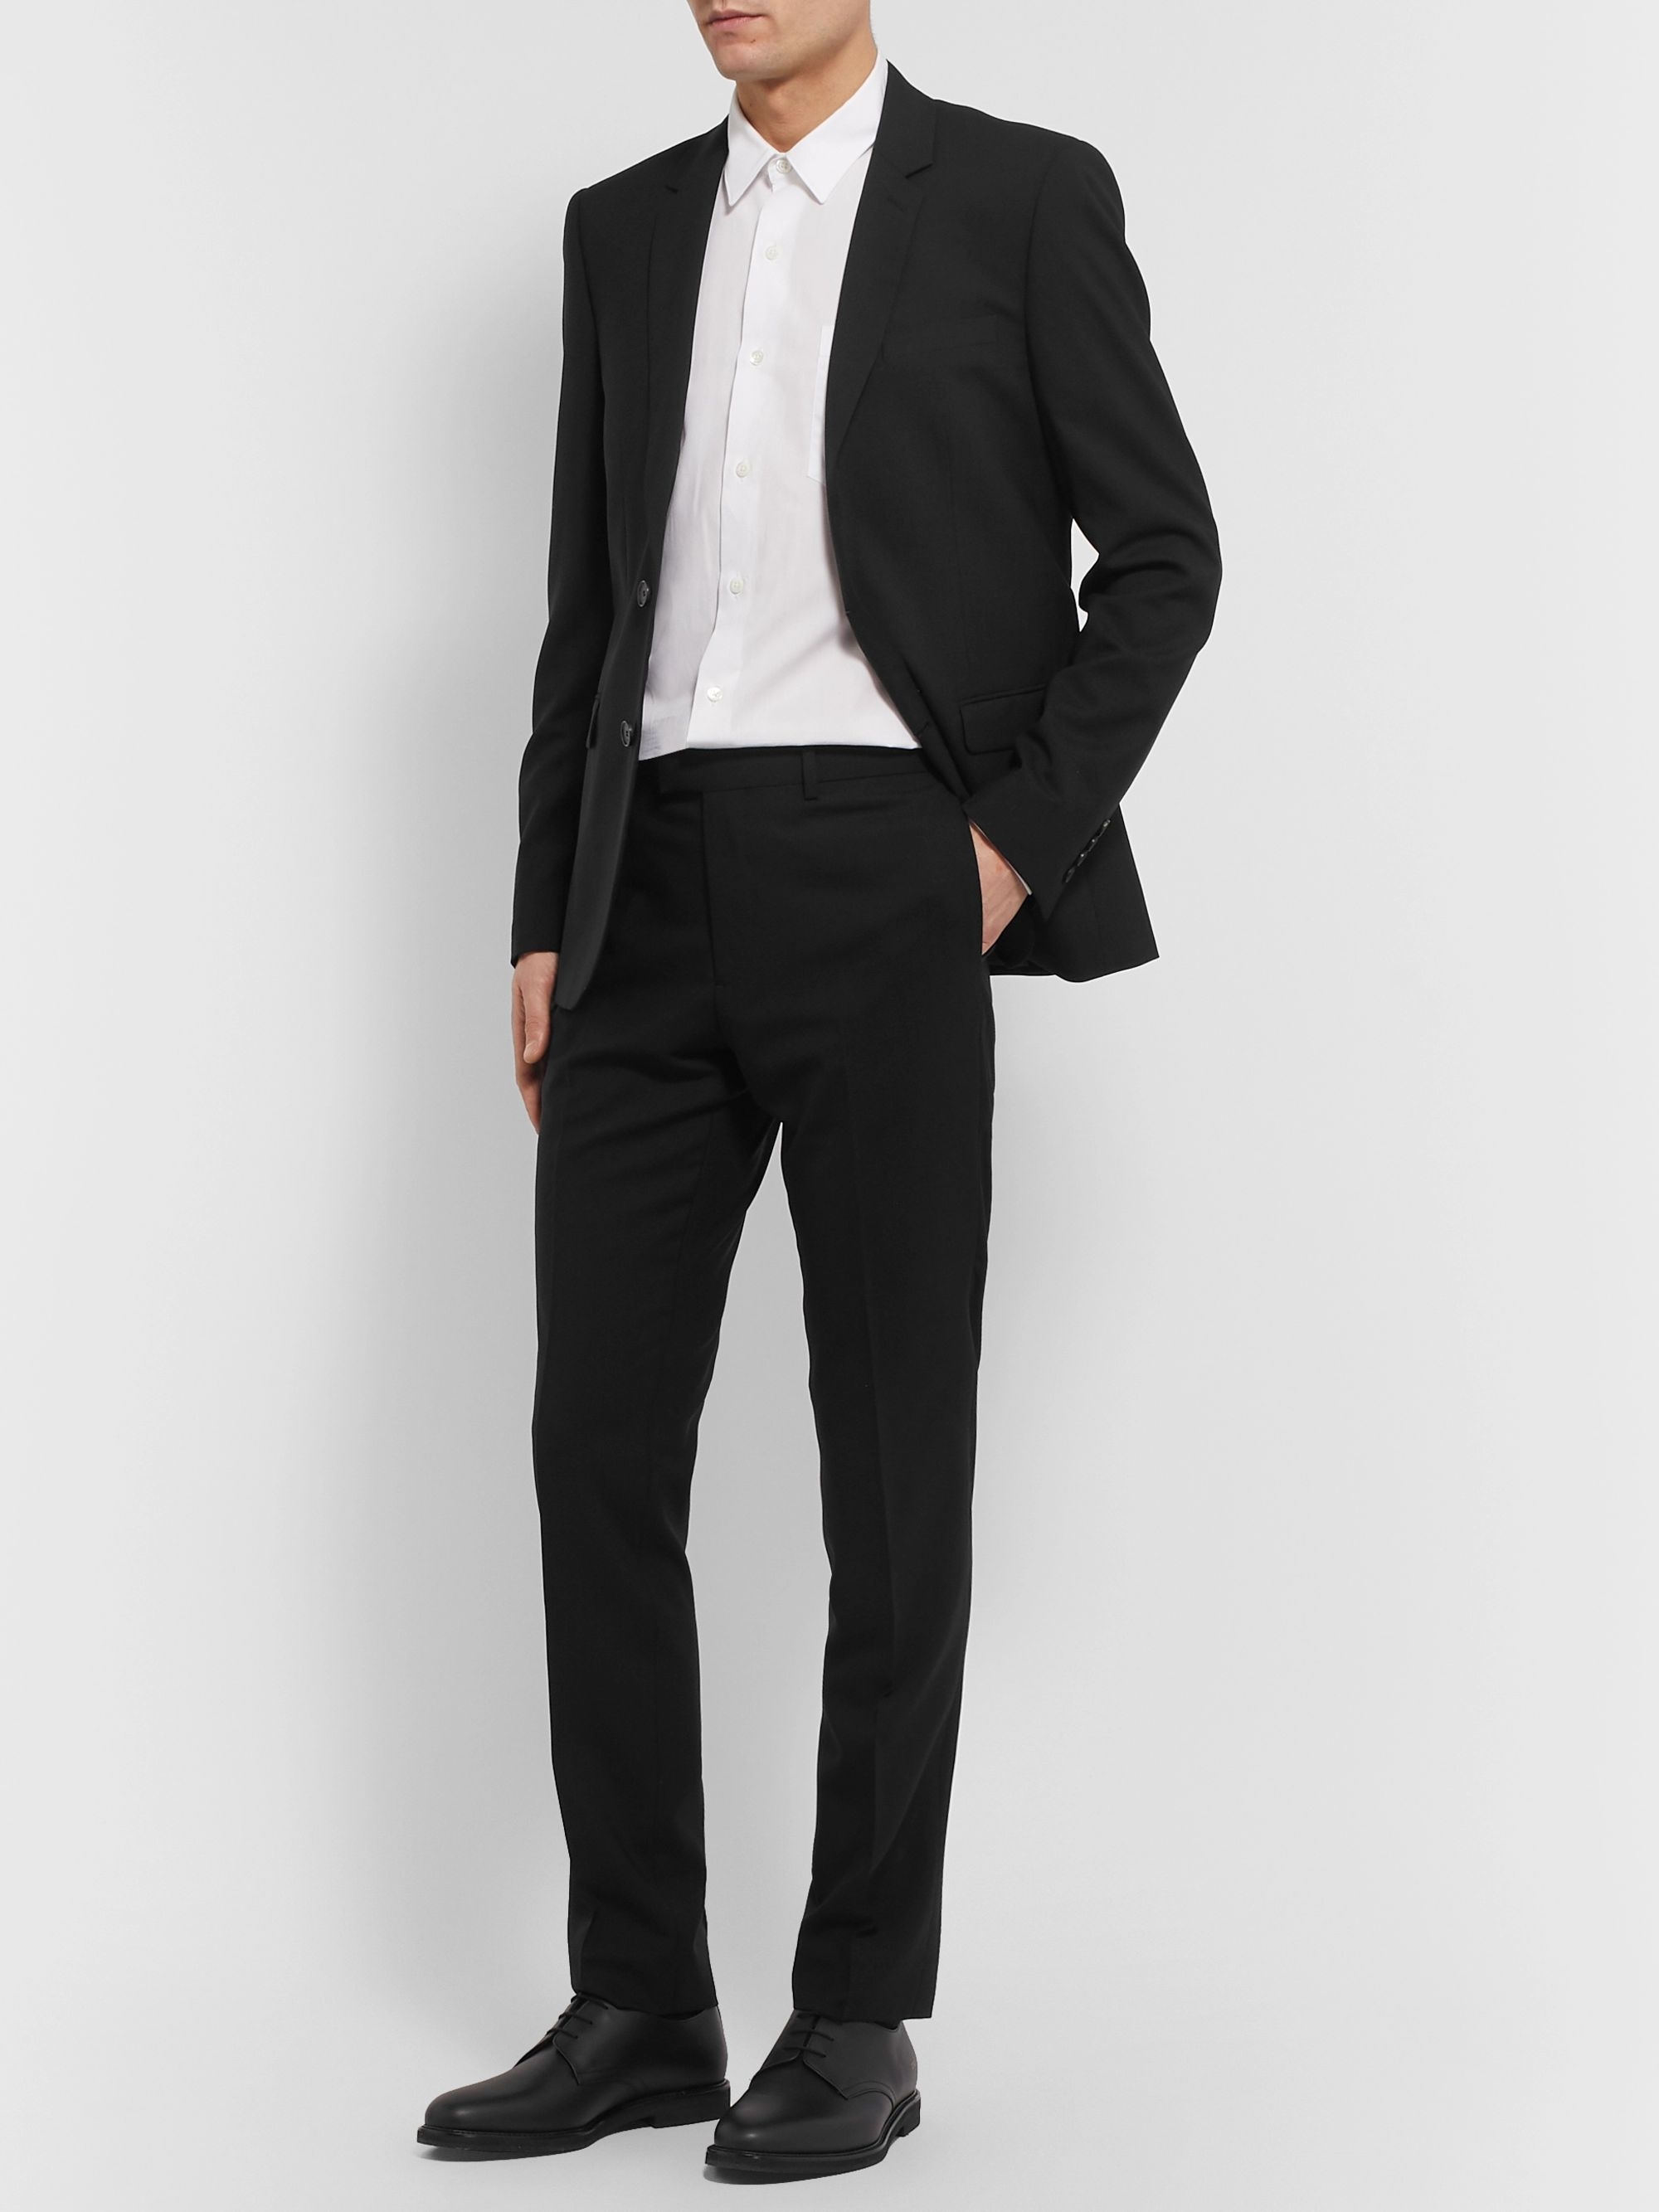 Sandro Black Slim-Fit Wool-Blend Suit Trousers